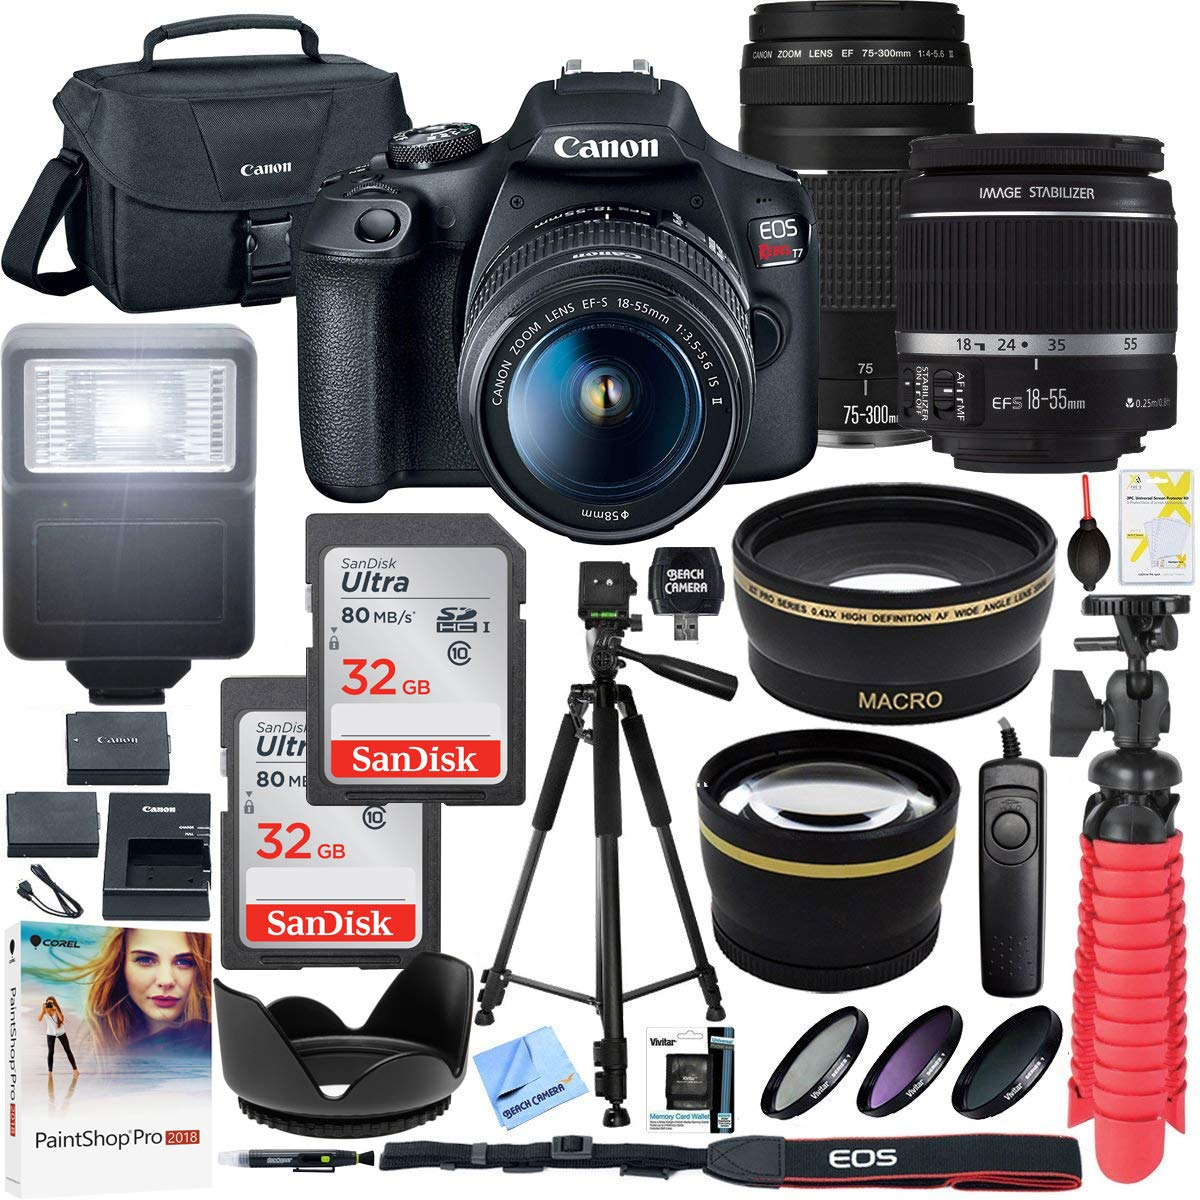 Canon T7 EOS Rebel DSLR Camera with EF-S 18-55mm f/3.5-5.6 is II and EF 75-300mm f/4-5.6 III Lens Plus Double Battery Accessory Bundle by Canon